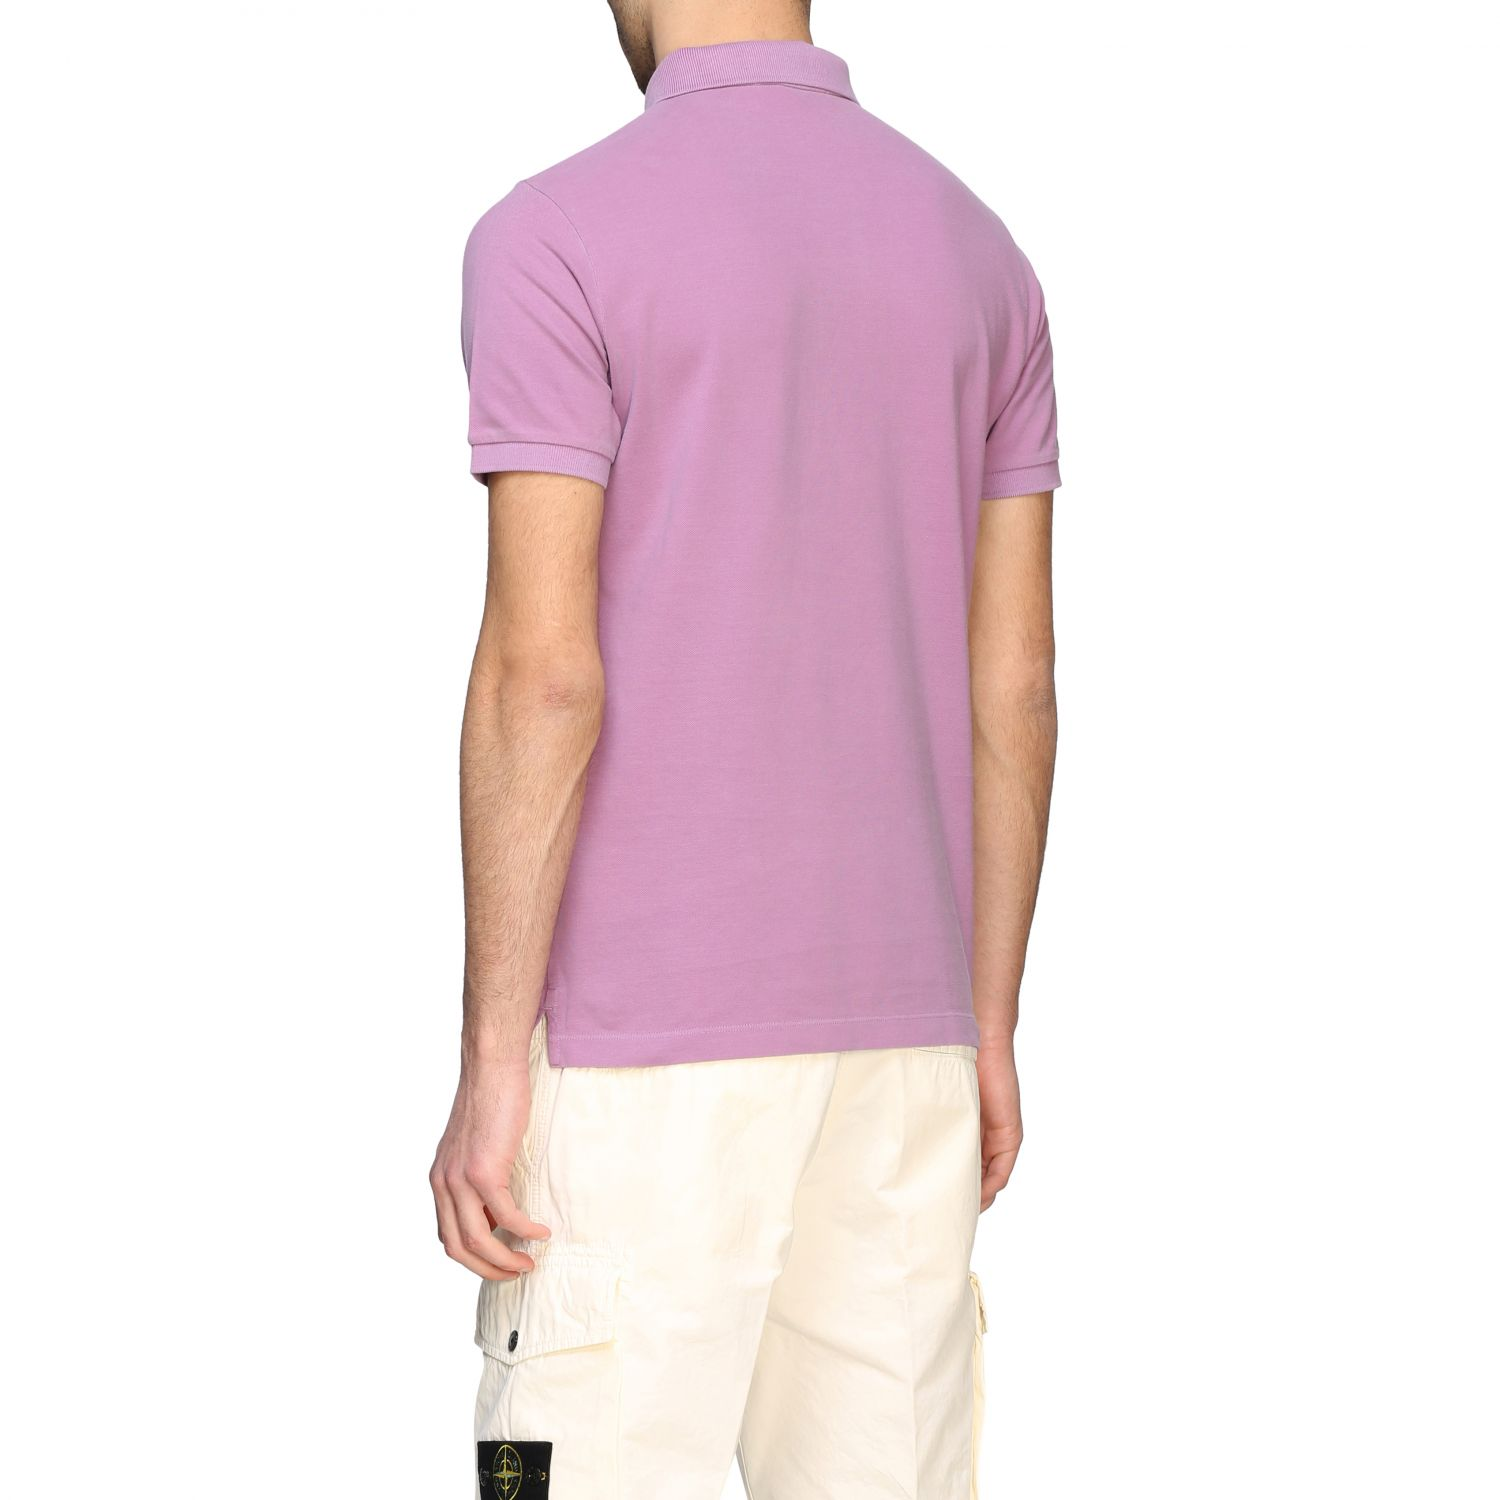 Stone Island short-sleeved polo shirt pink 3